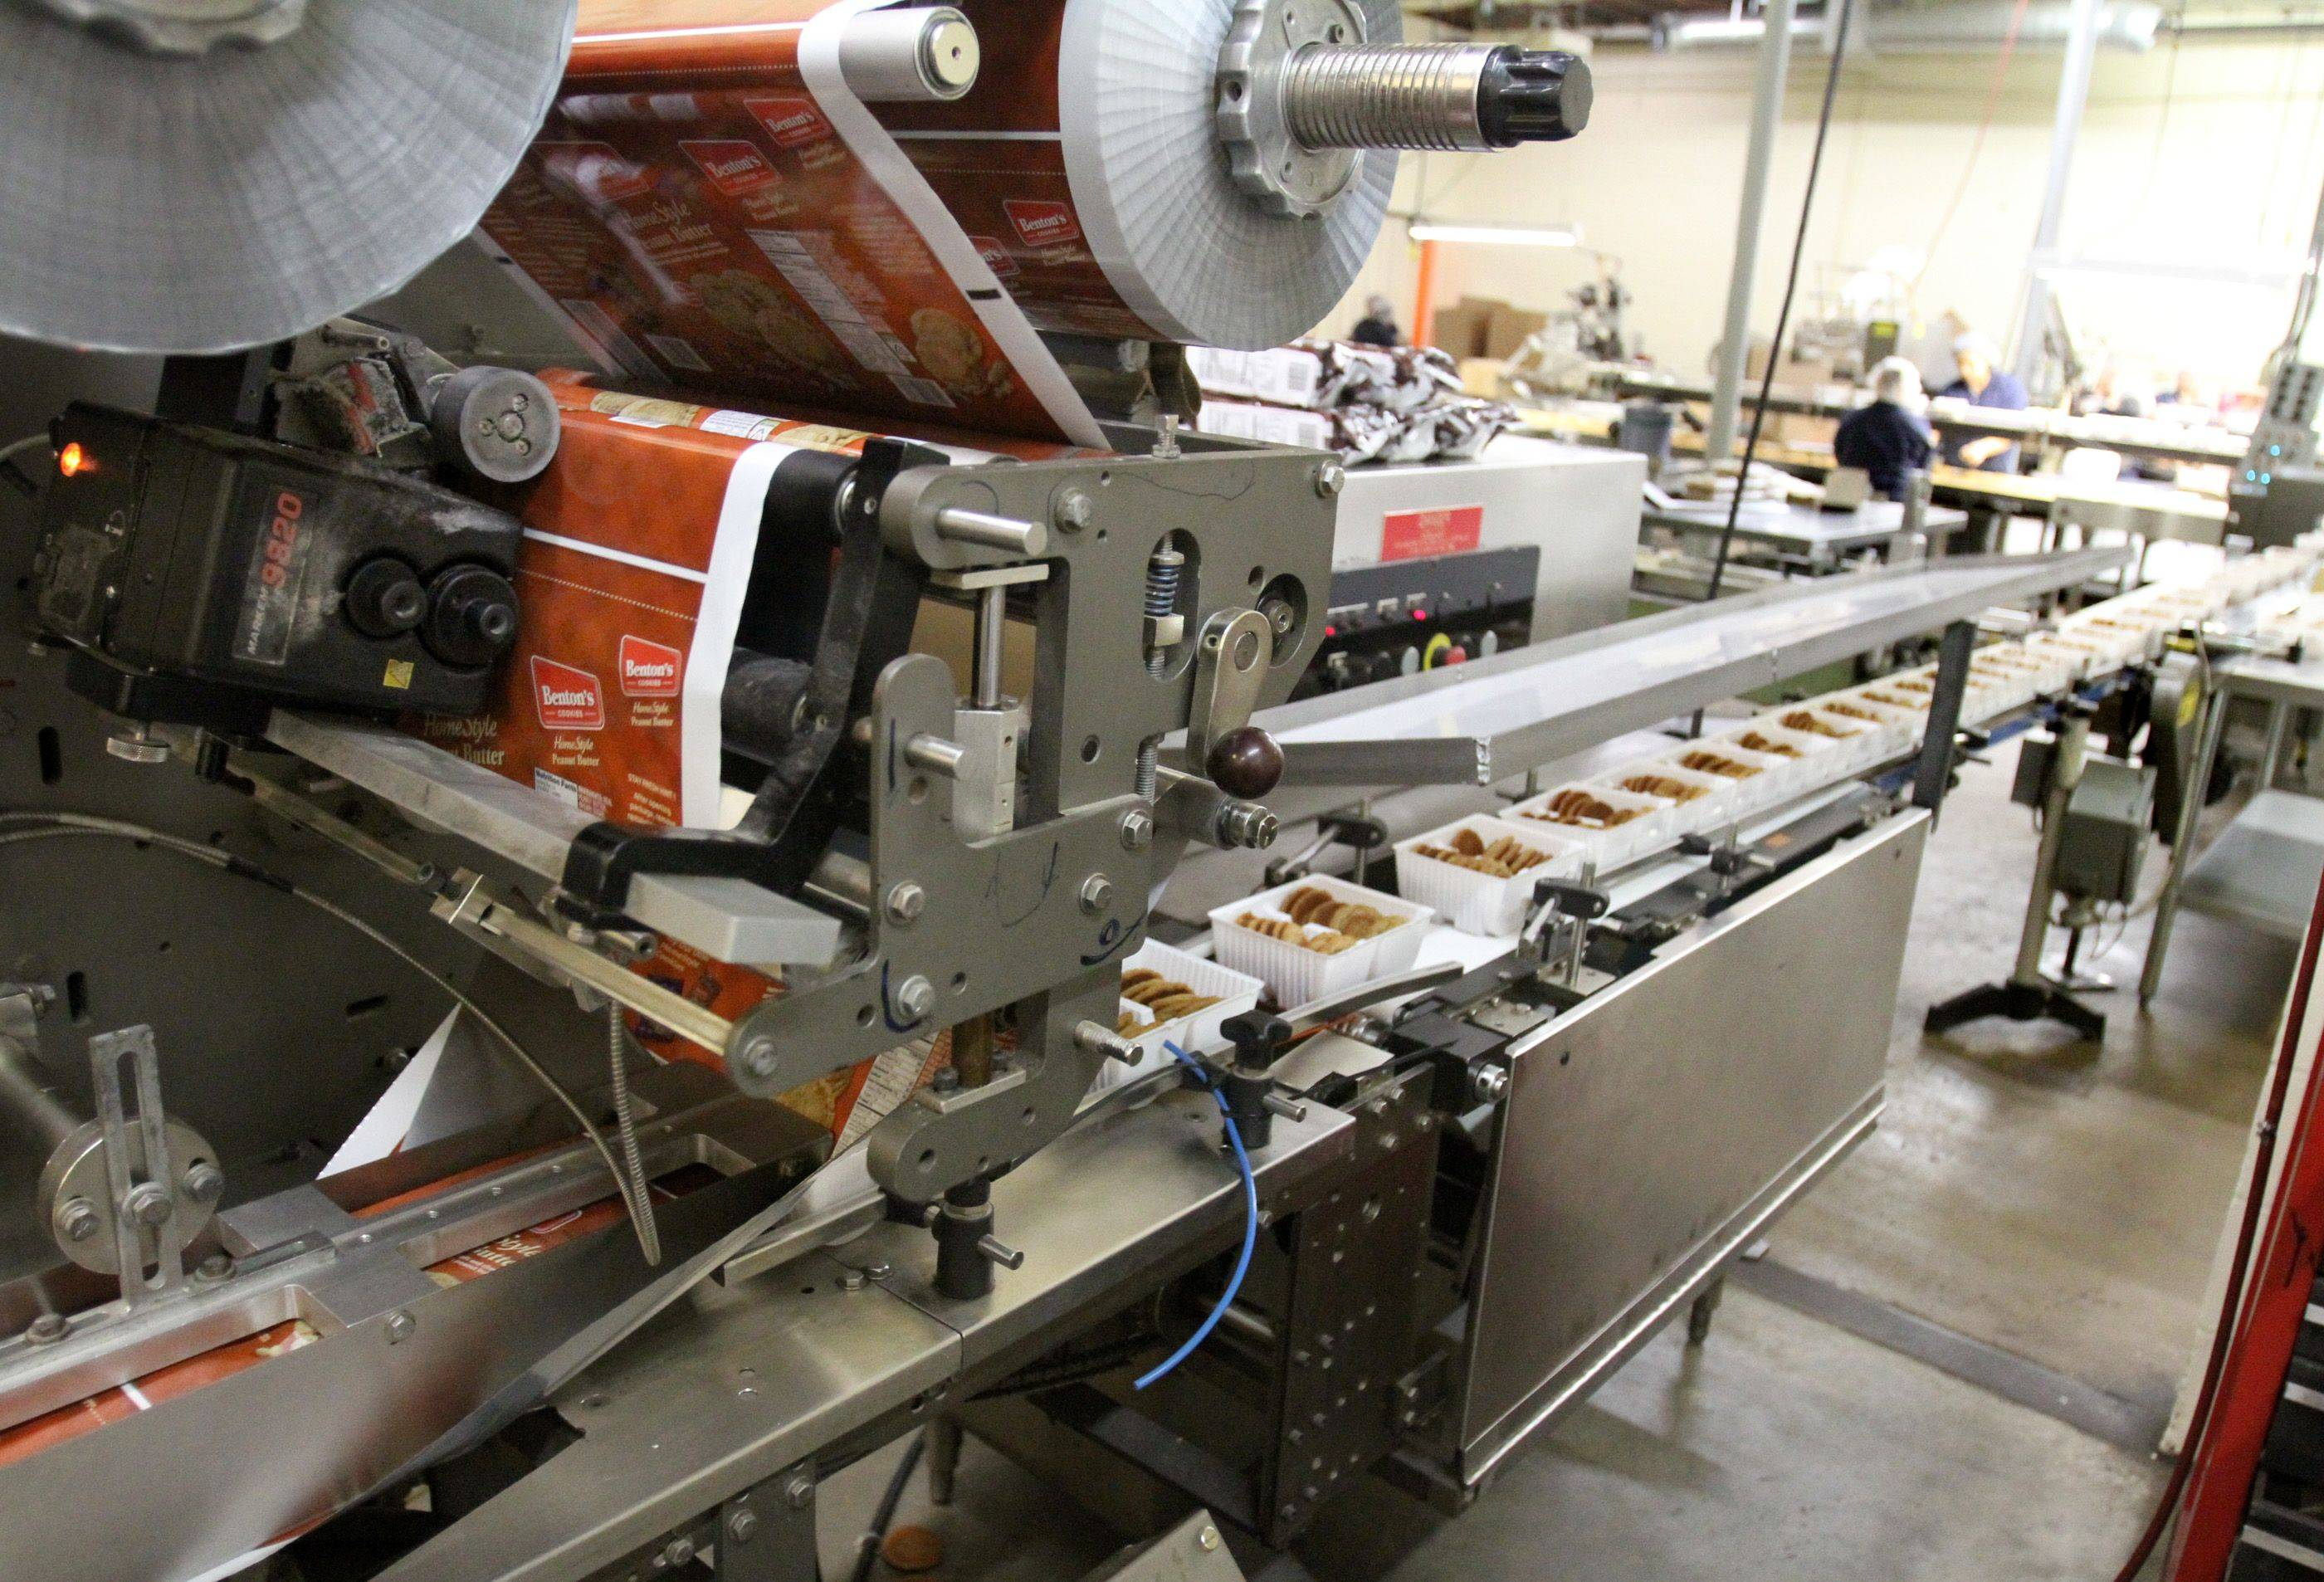 A machine wraps some of the 25,000-pounds of cookies packaged each day including cookies under different brand names shown on labels here.